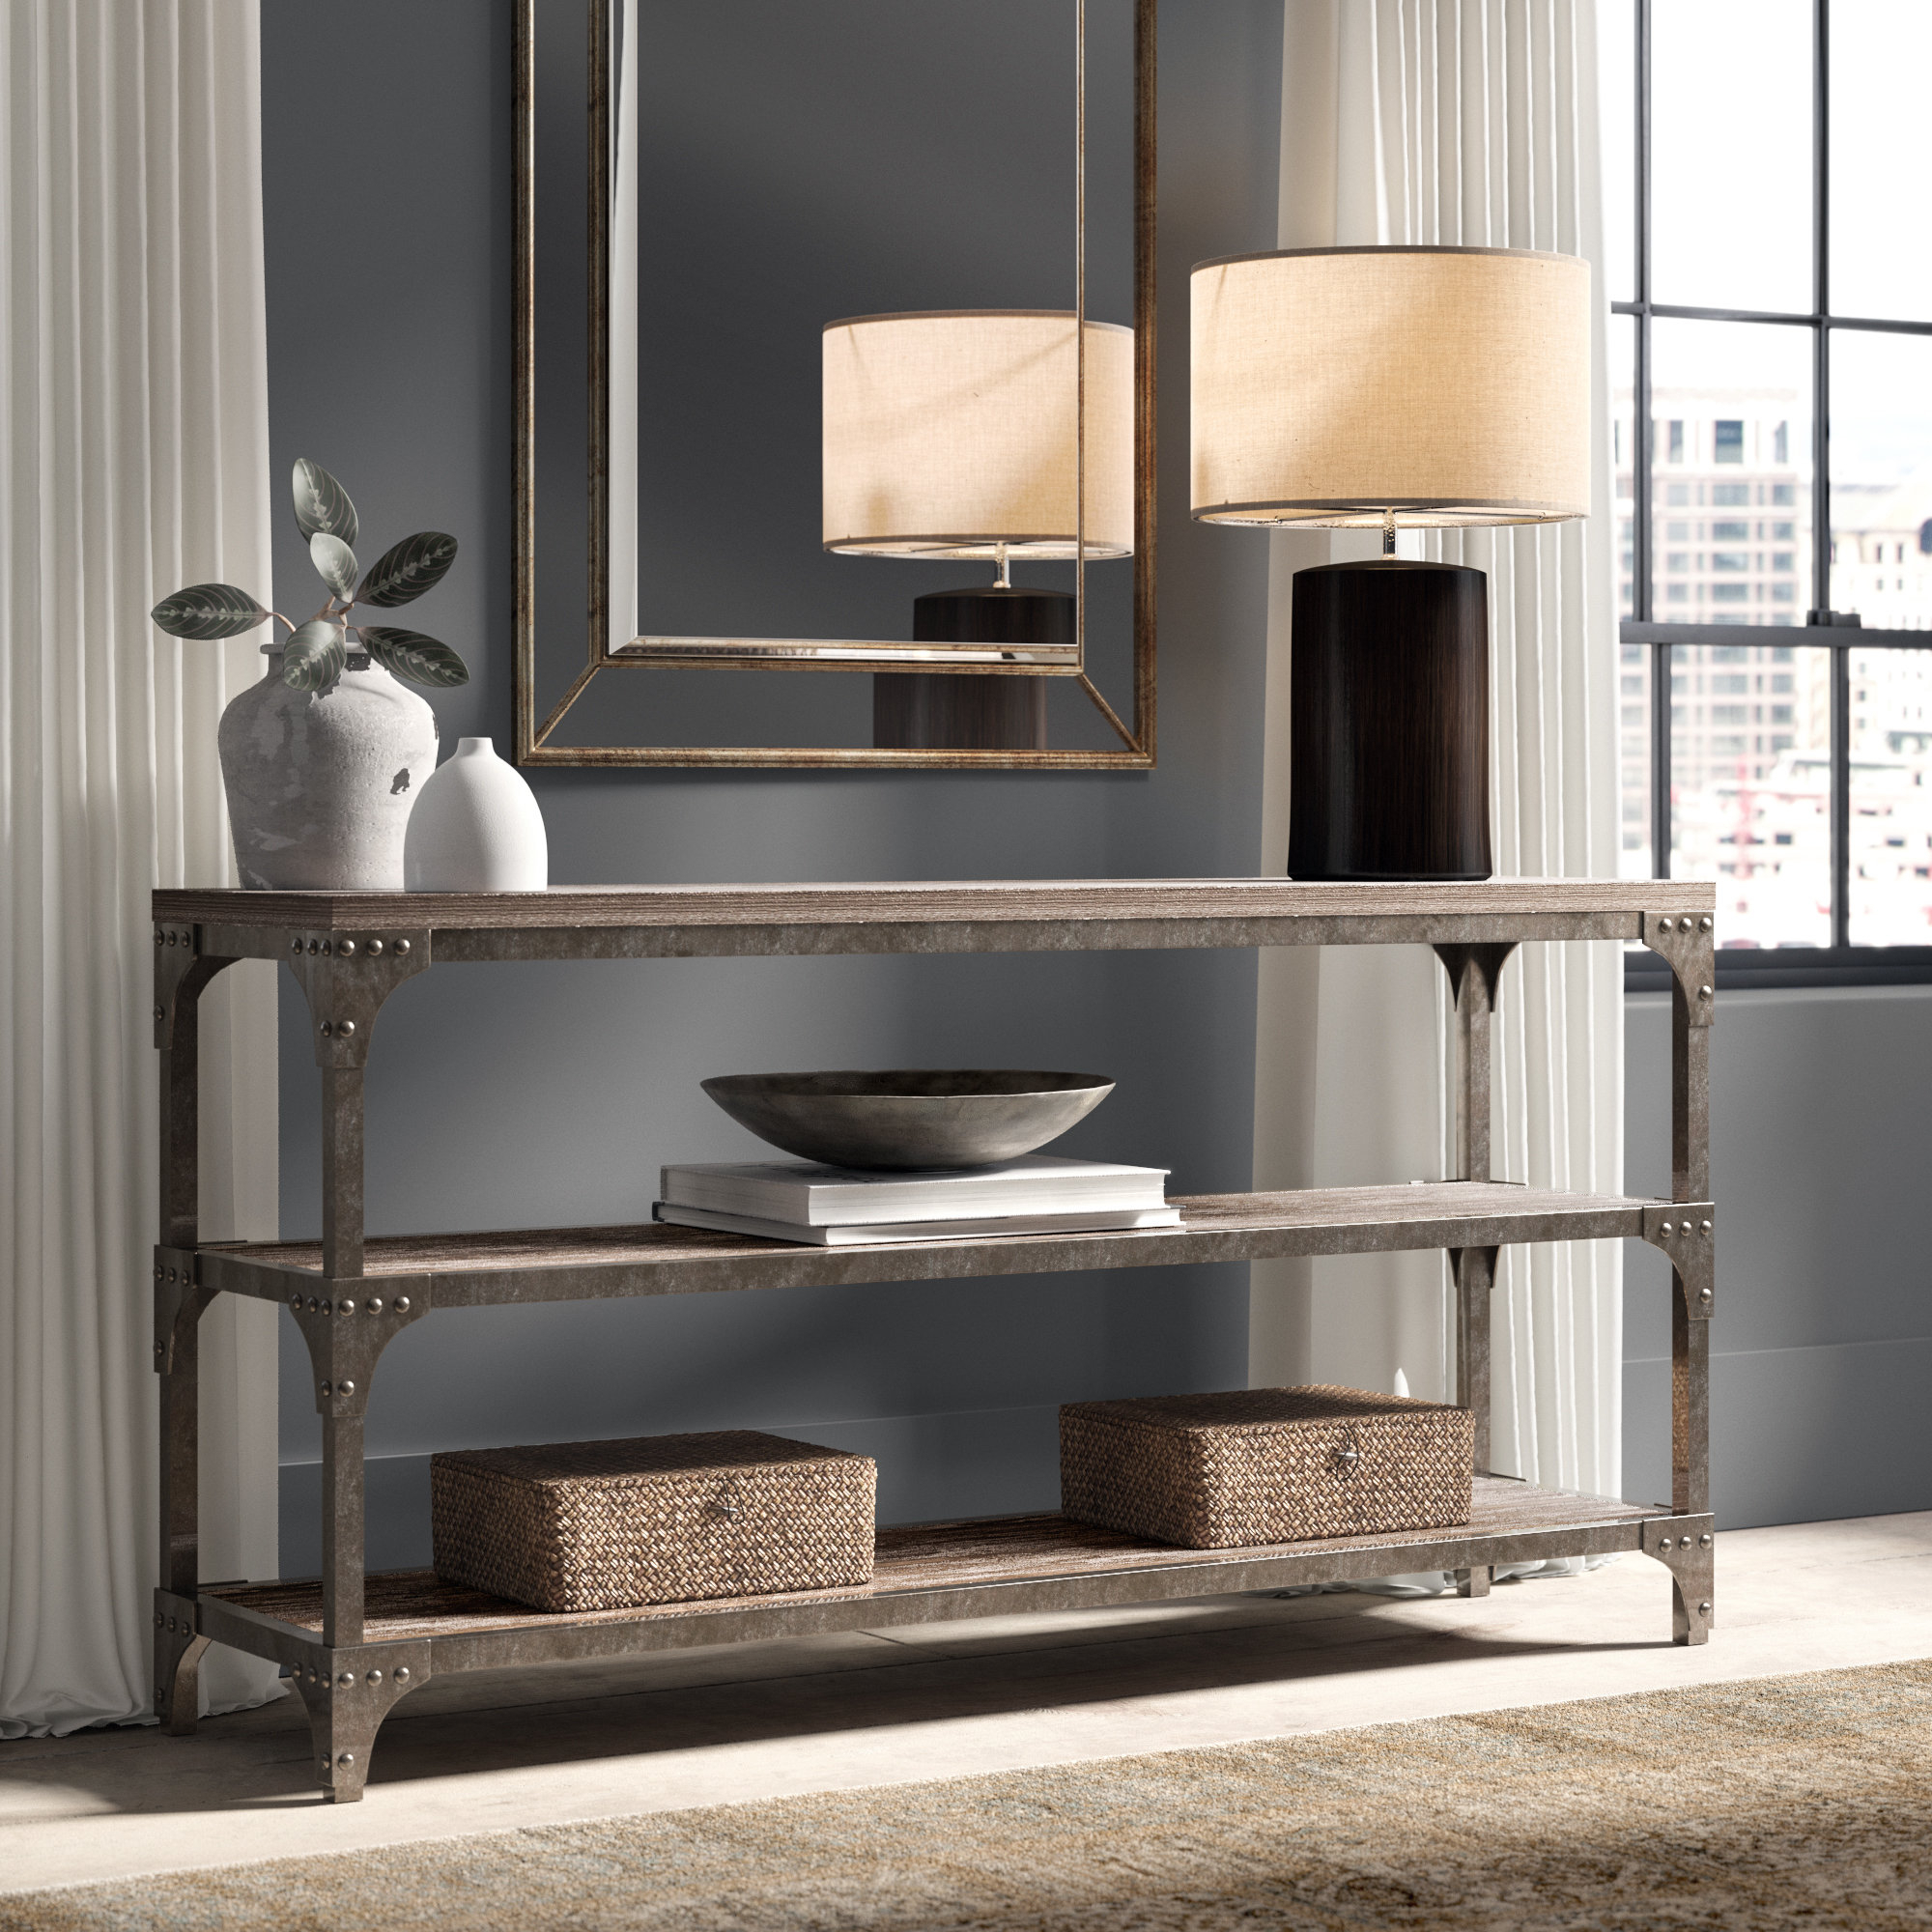 Wayfair Regarding Well Liked Parsons Walnut Top & Dark Steel Base 48x16 Console Tables (View 15 of 20)